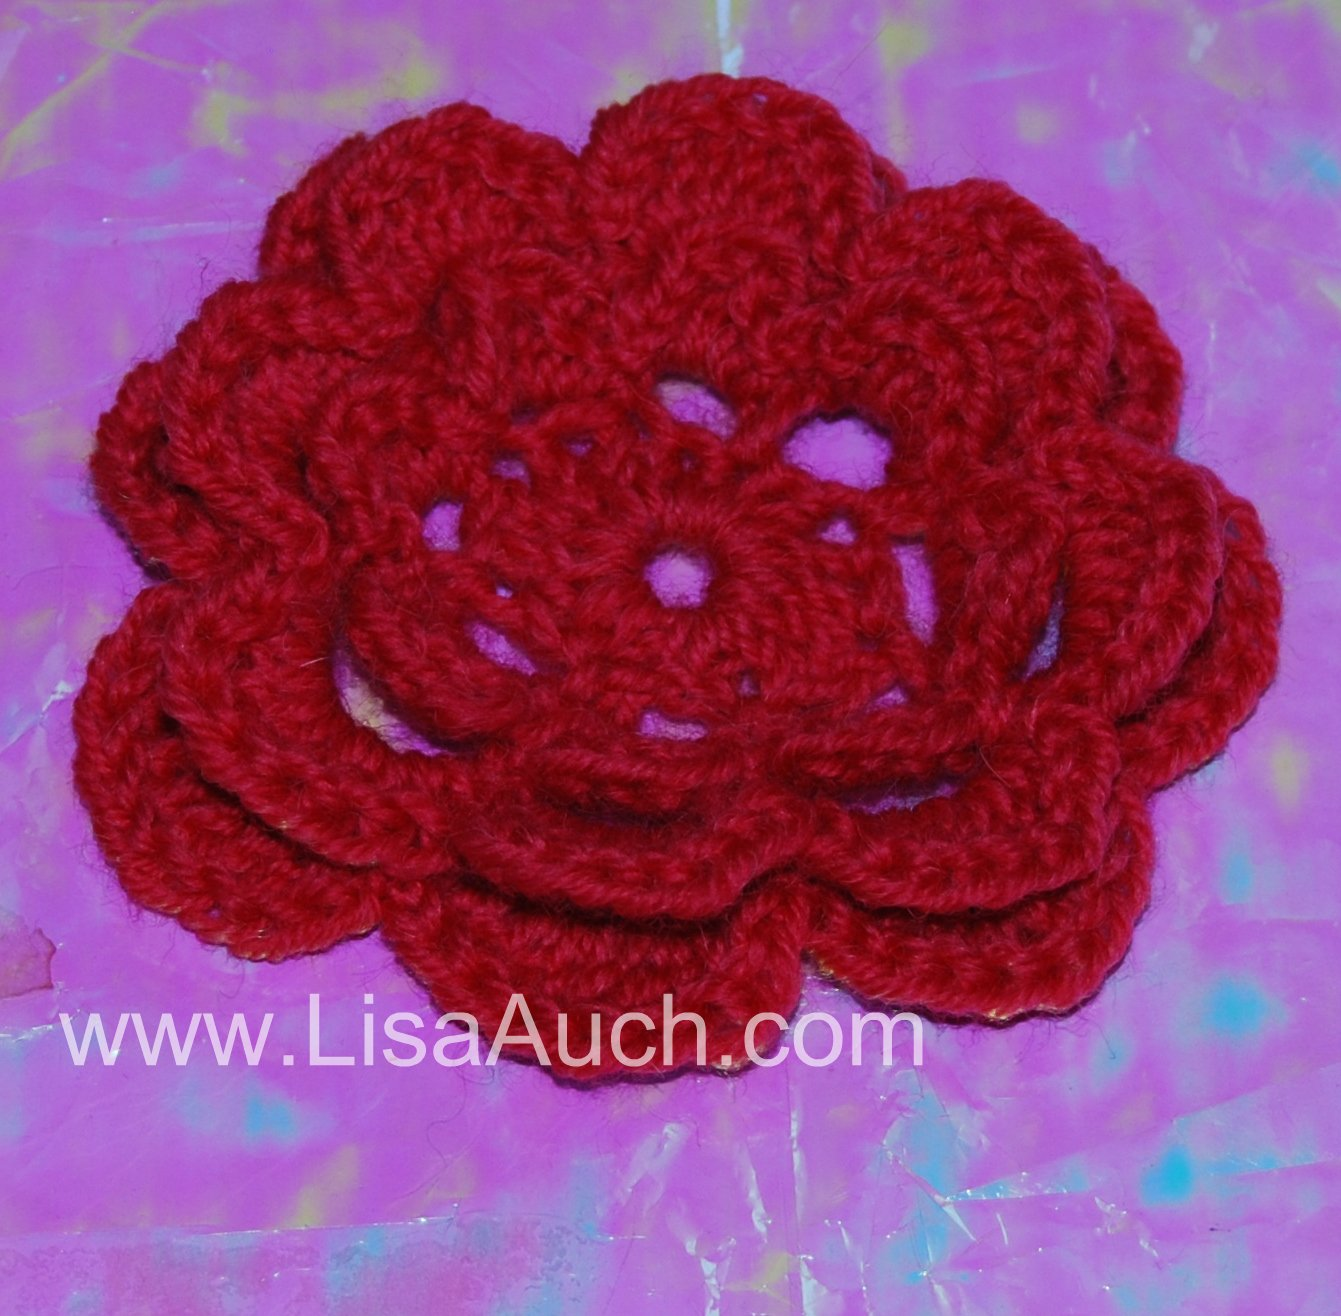 crochet flower-free crochet flower patterns